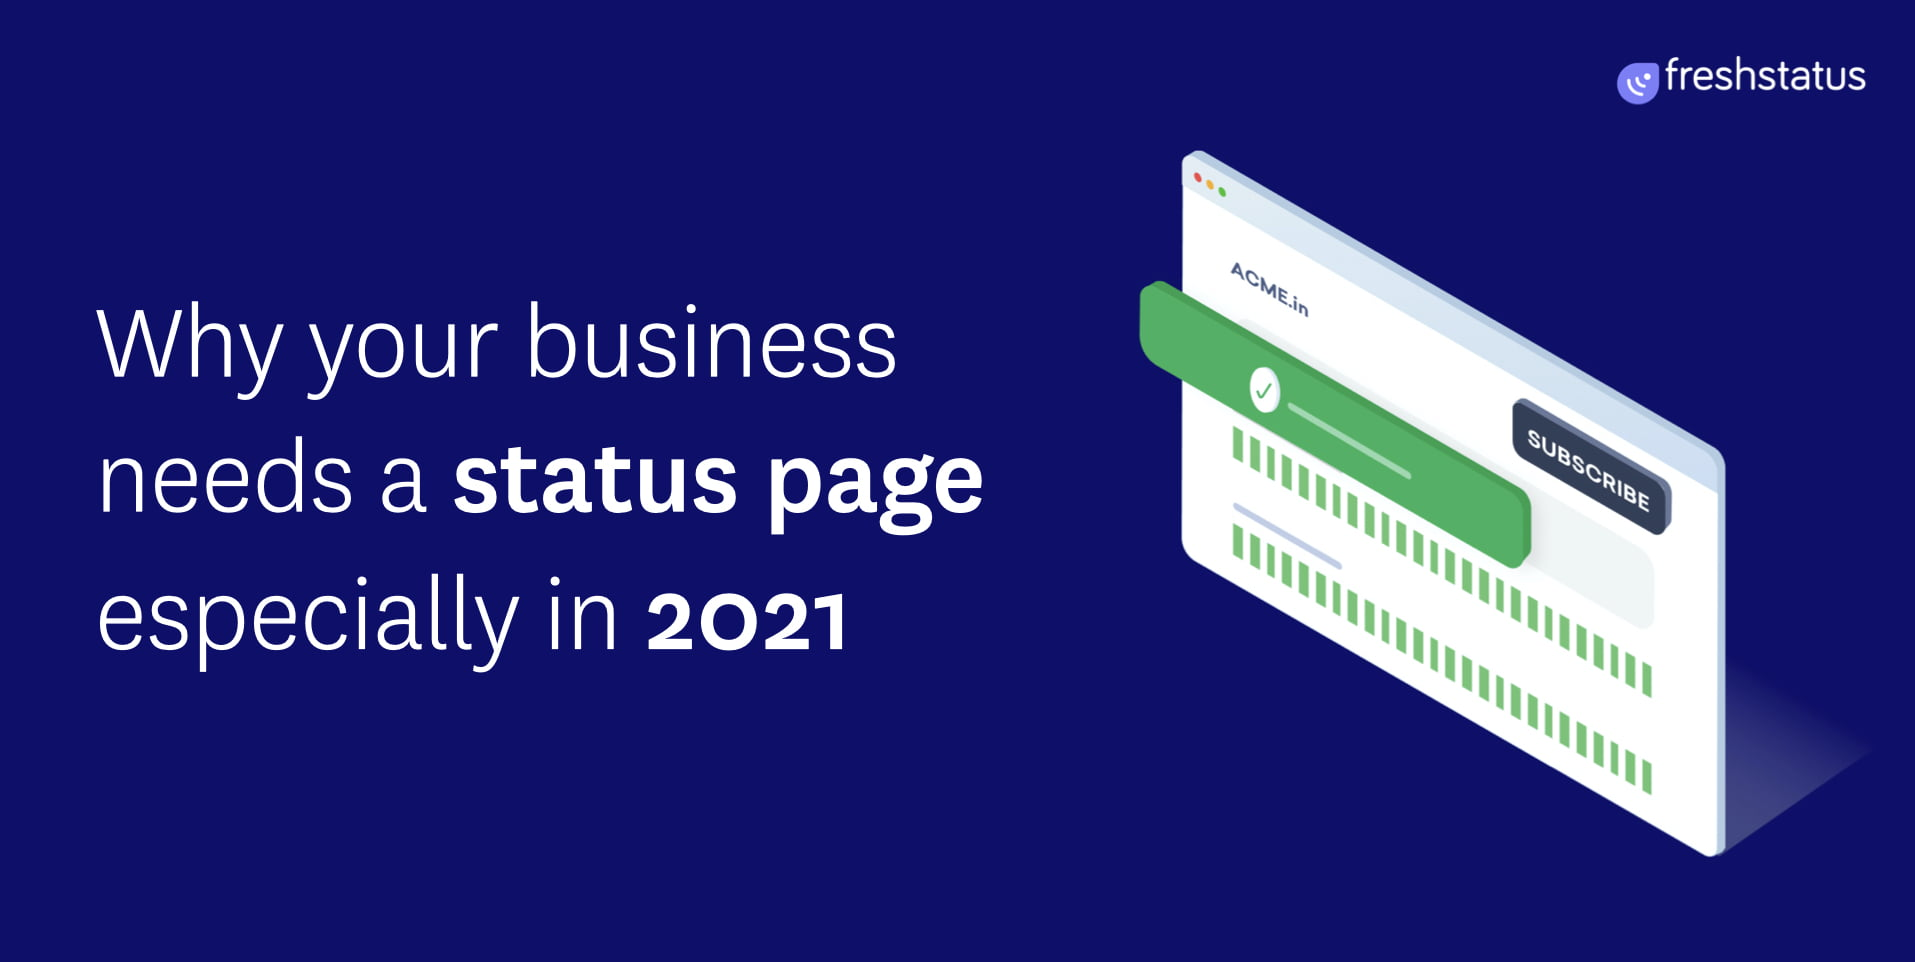 Why Your Business Needs a Status Page Especially in 2021 - HostNamaste